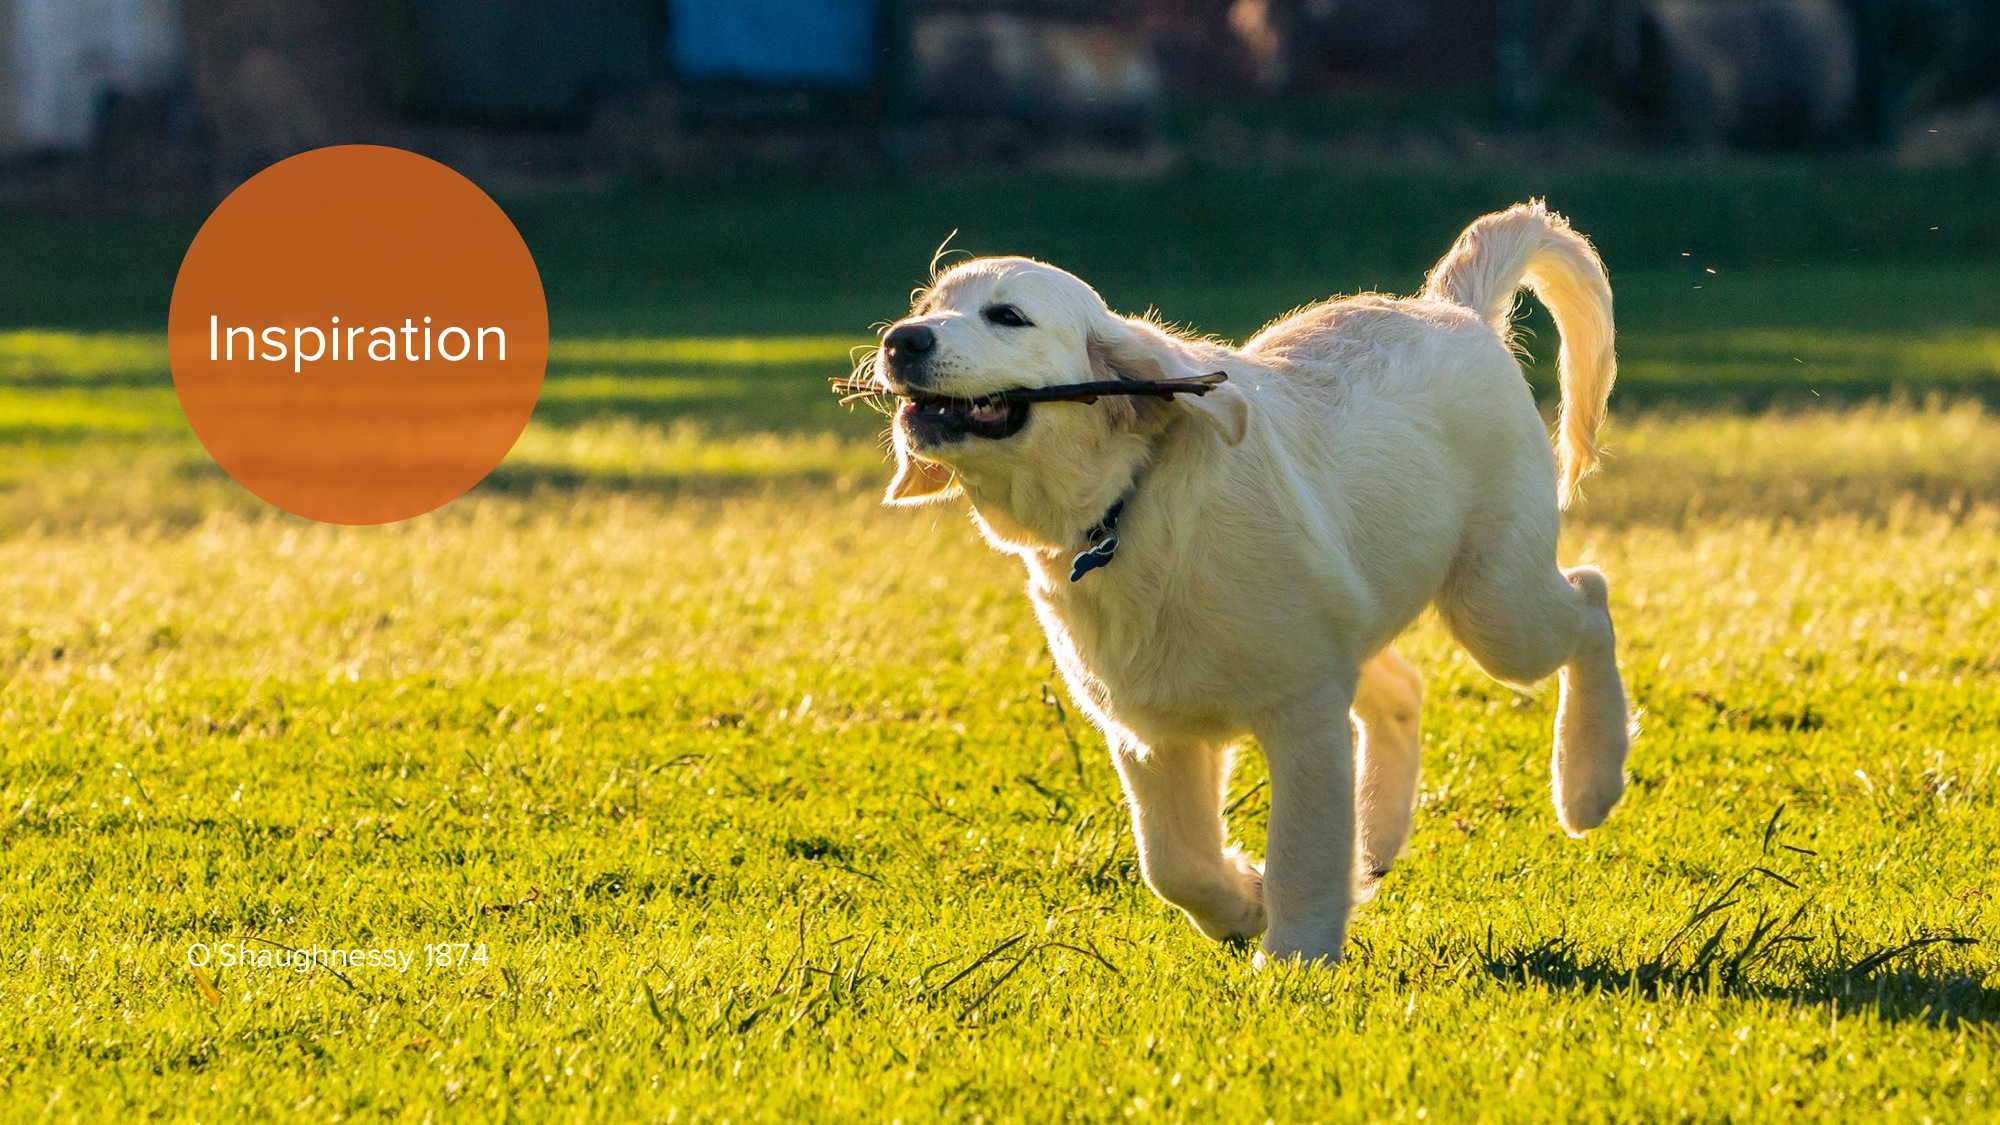 2014.10.17 - -How Are Ideas Connected- Drawing the Design Process of Idea Networks in Global Game Jam- - Meaningful Play 2014 2.jpeg